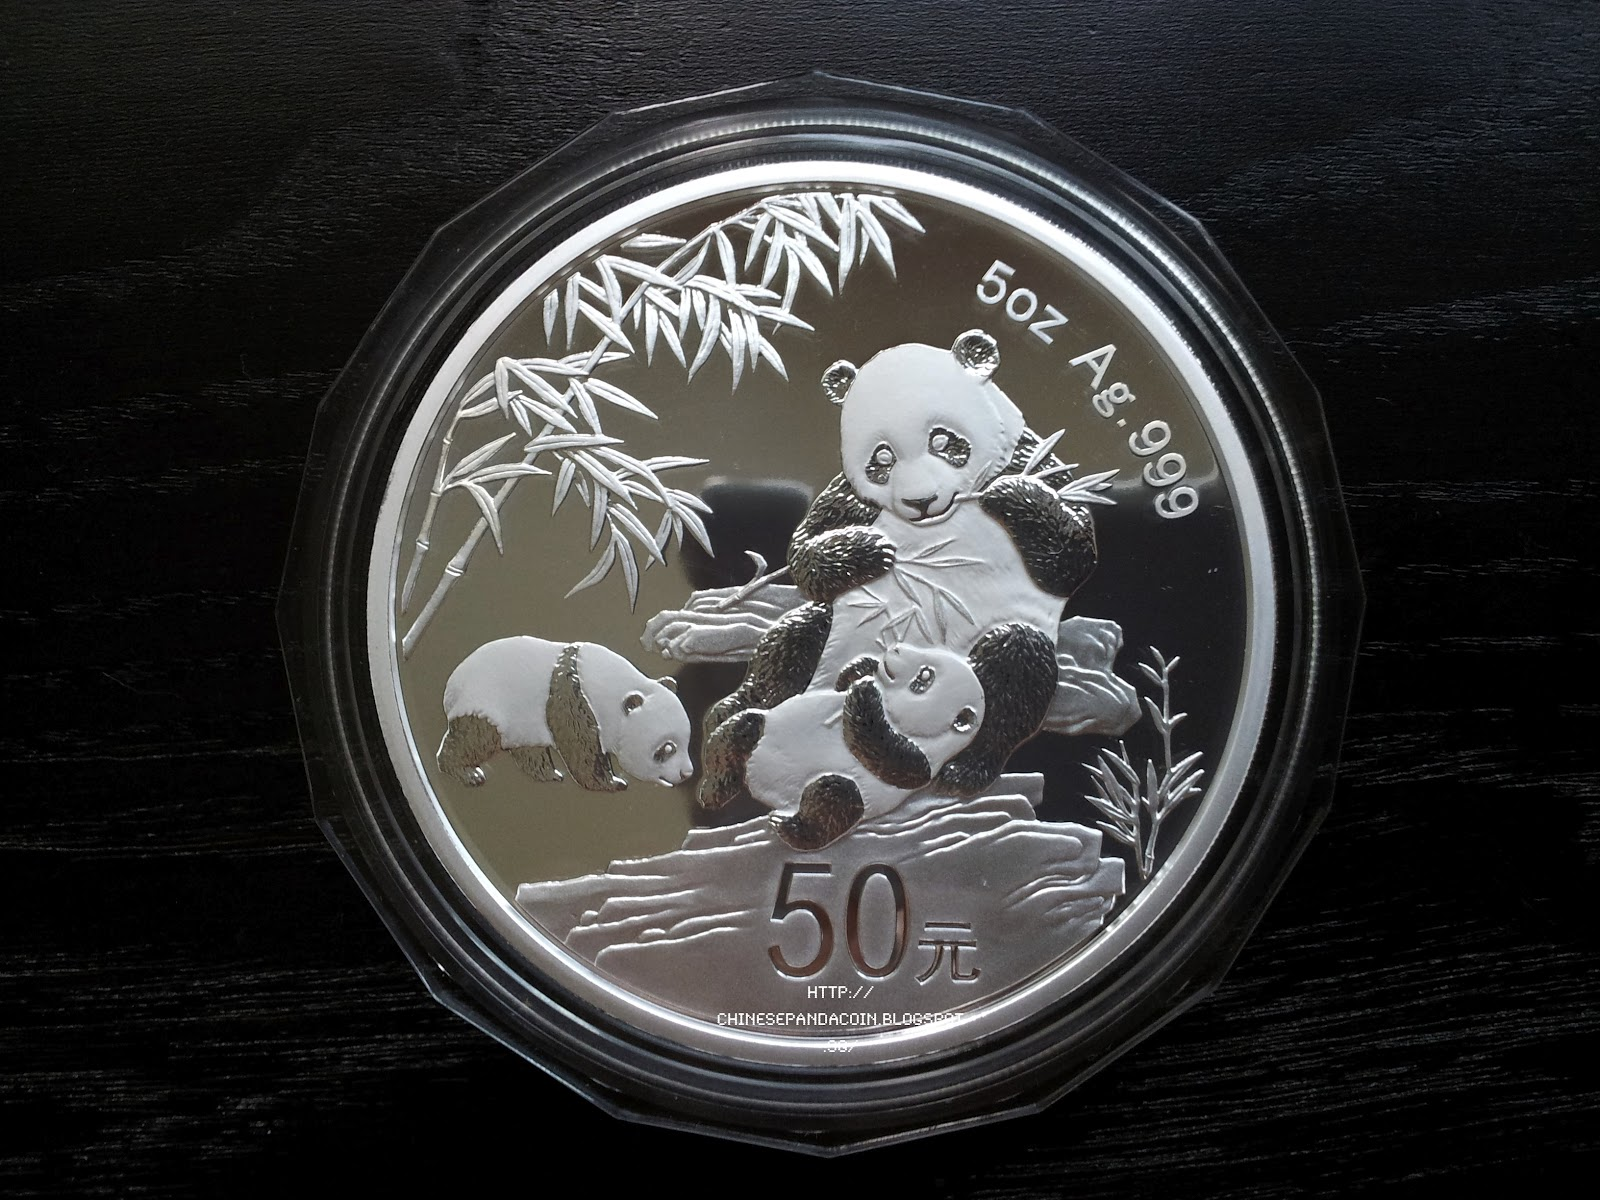 Chinese Panda Coin Commemorative 5 Oz Silver Panda For